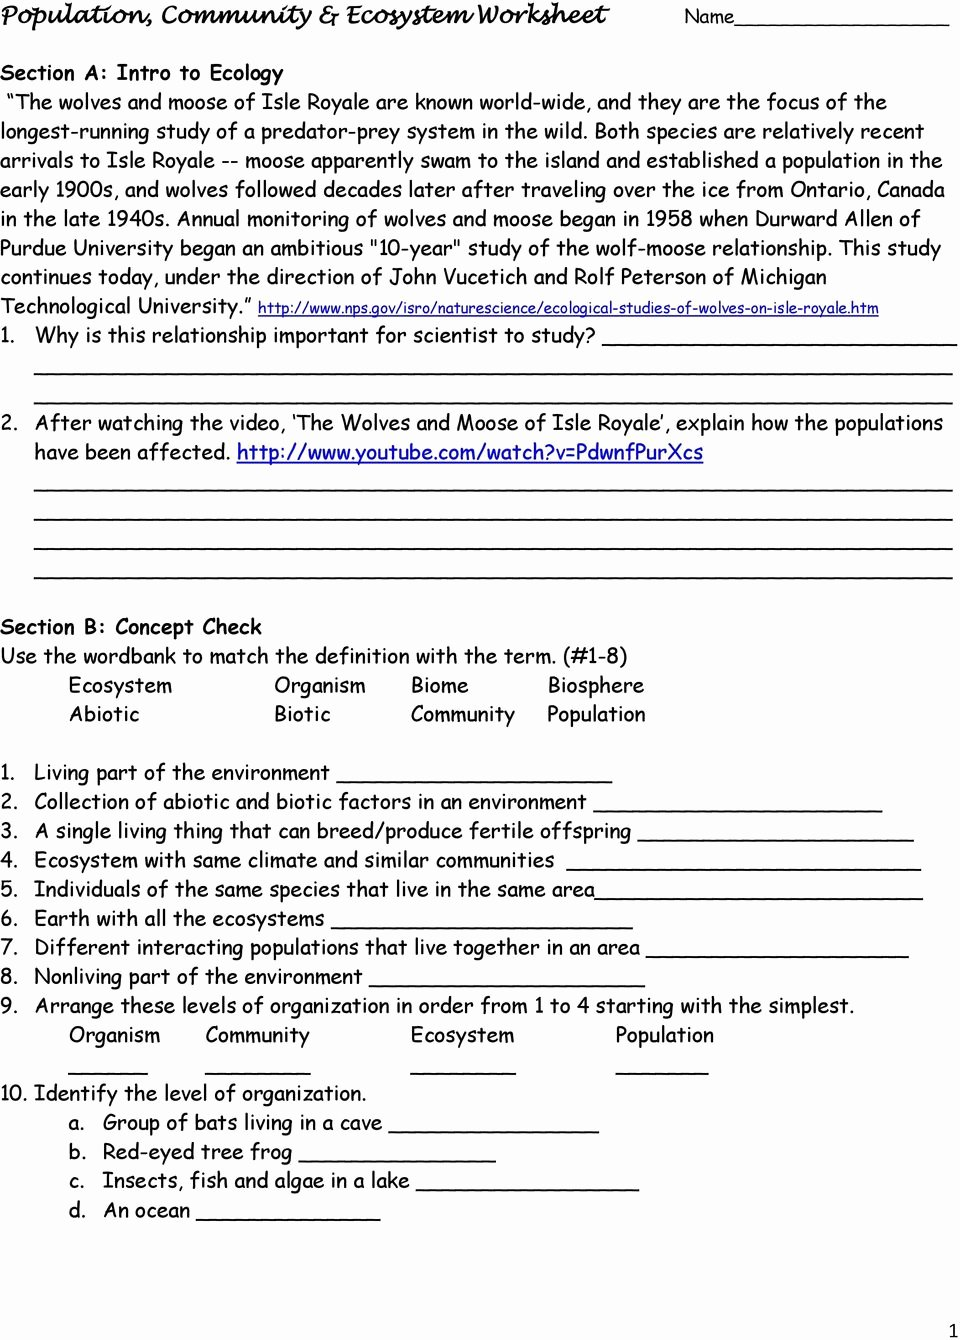 Populations and Communities Worksheet Answers Ideas Population Munity & Ecosystem Worksheet Pdf Free Download